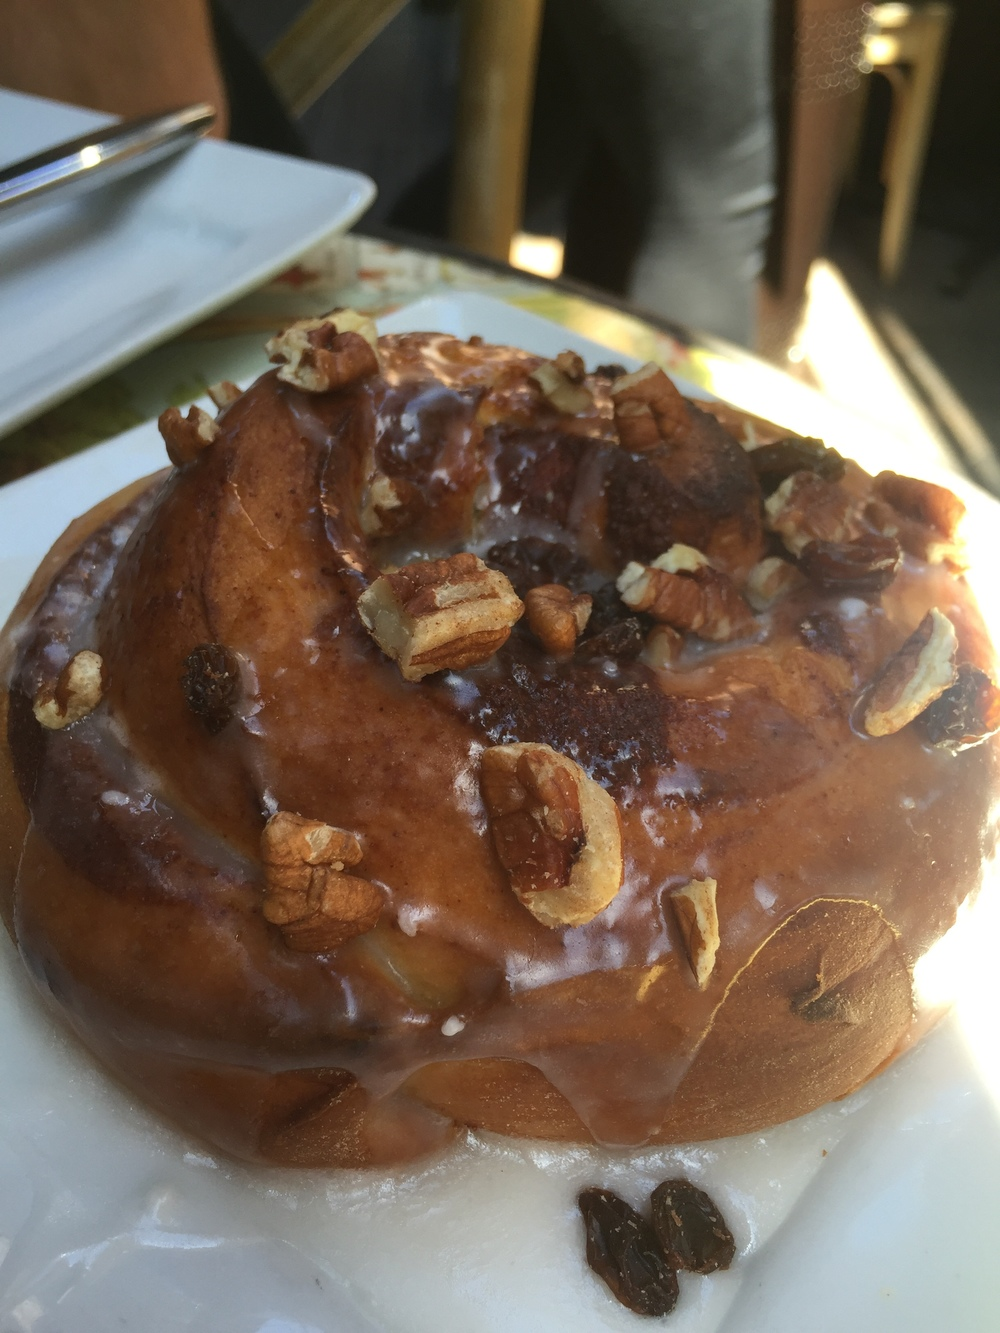 Cinnamon Roll at The Patio on Lamont